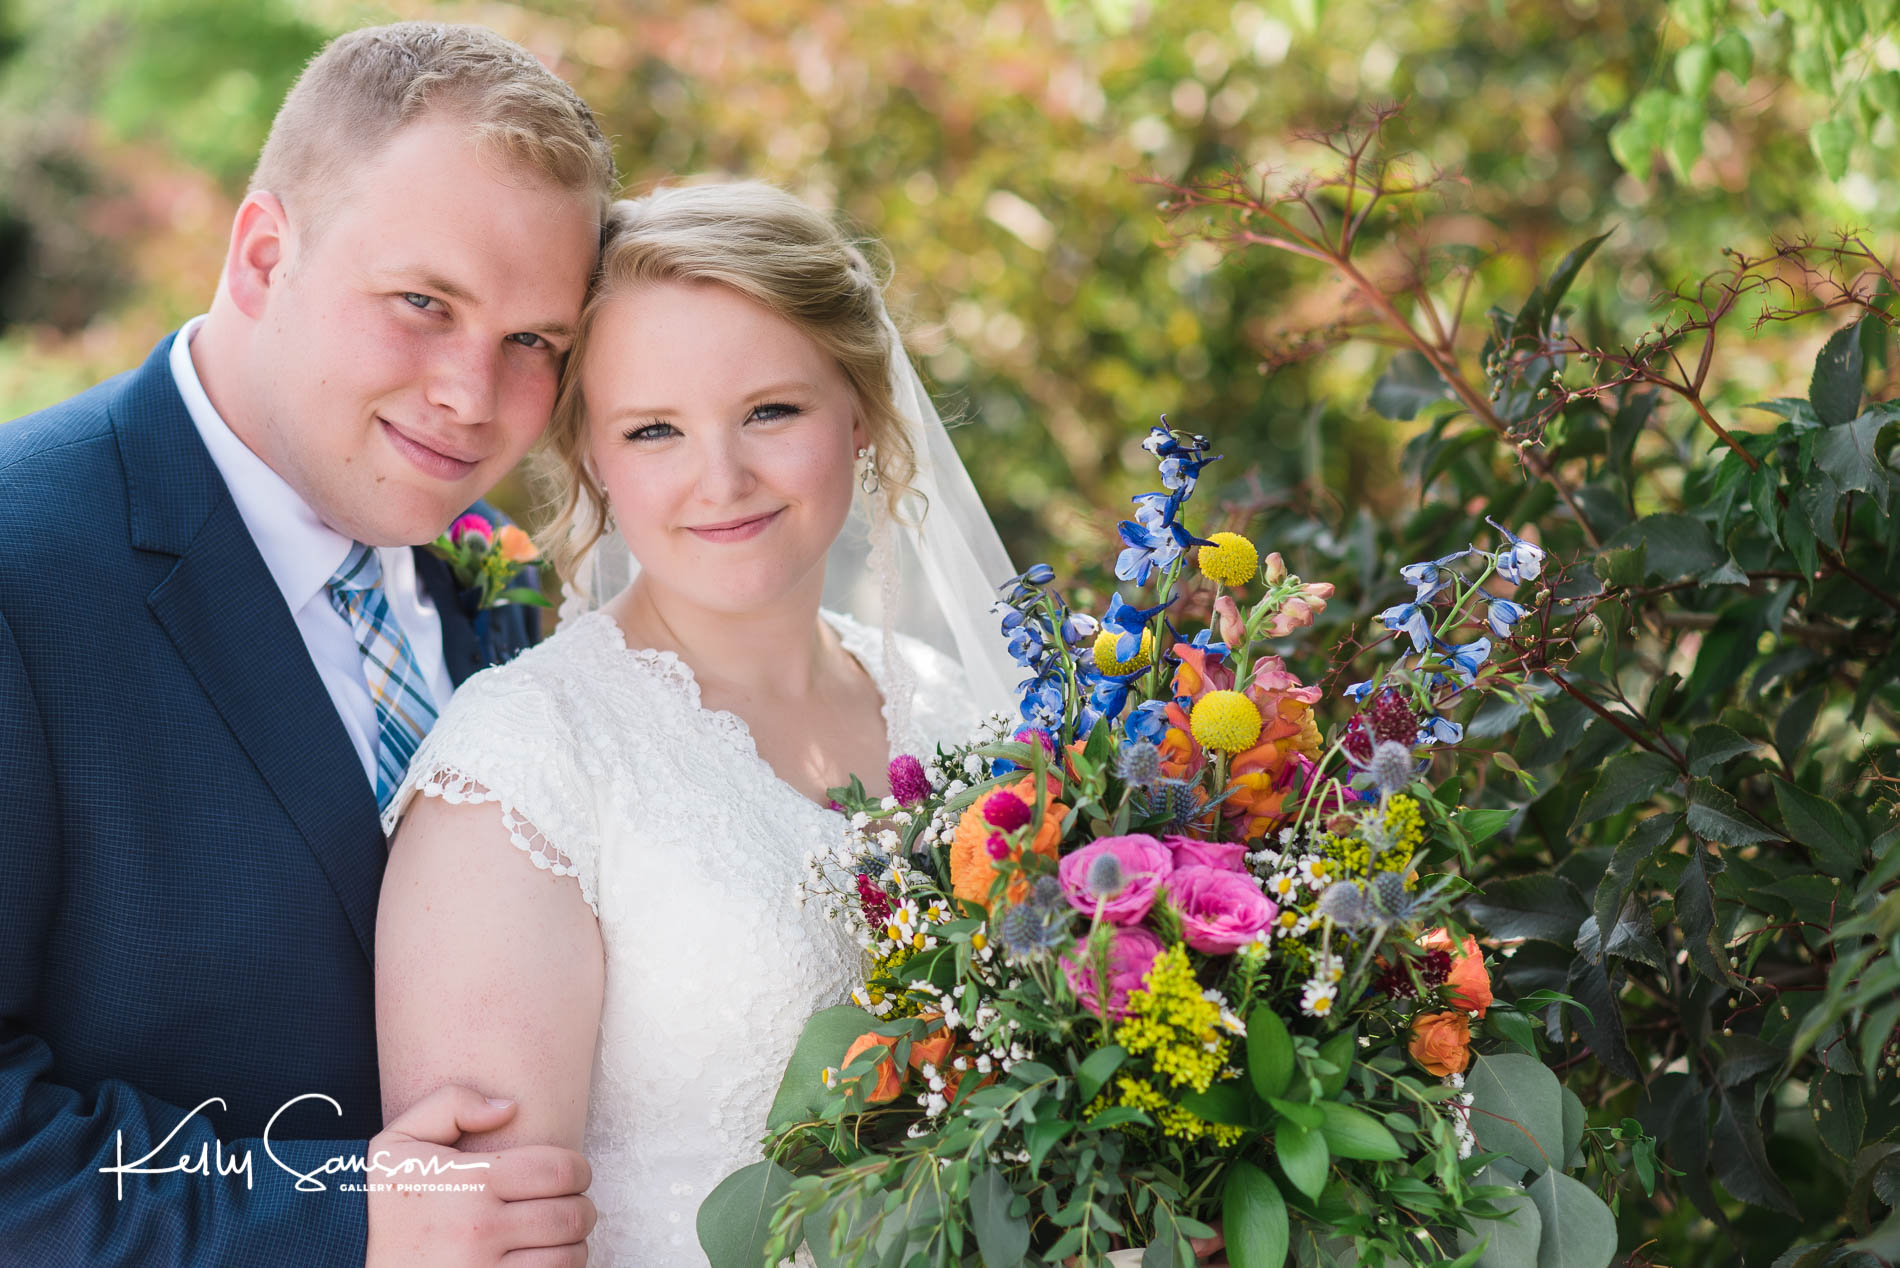 A bride and groom snuggle and look at the camera for Jordan river temple wedding photography.